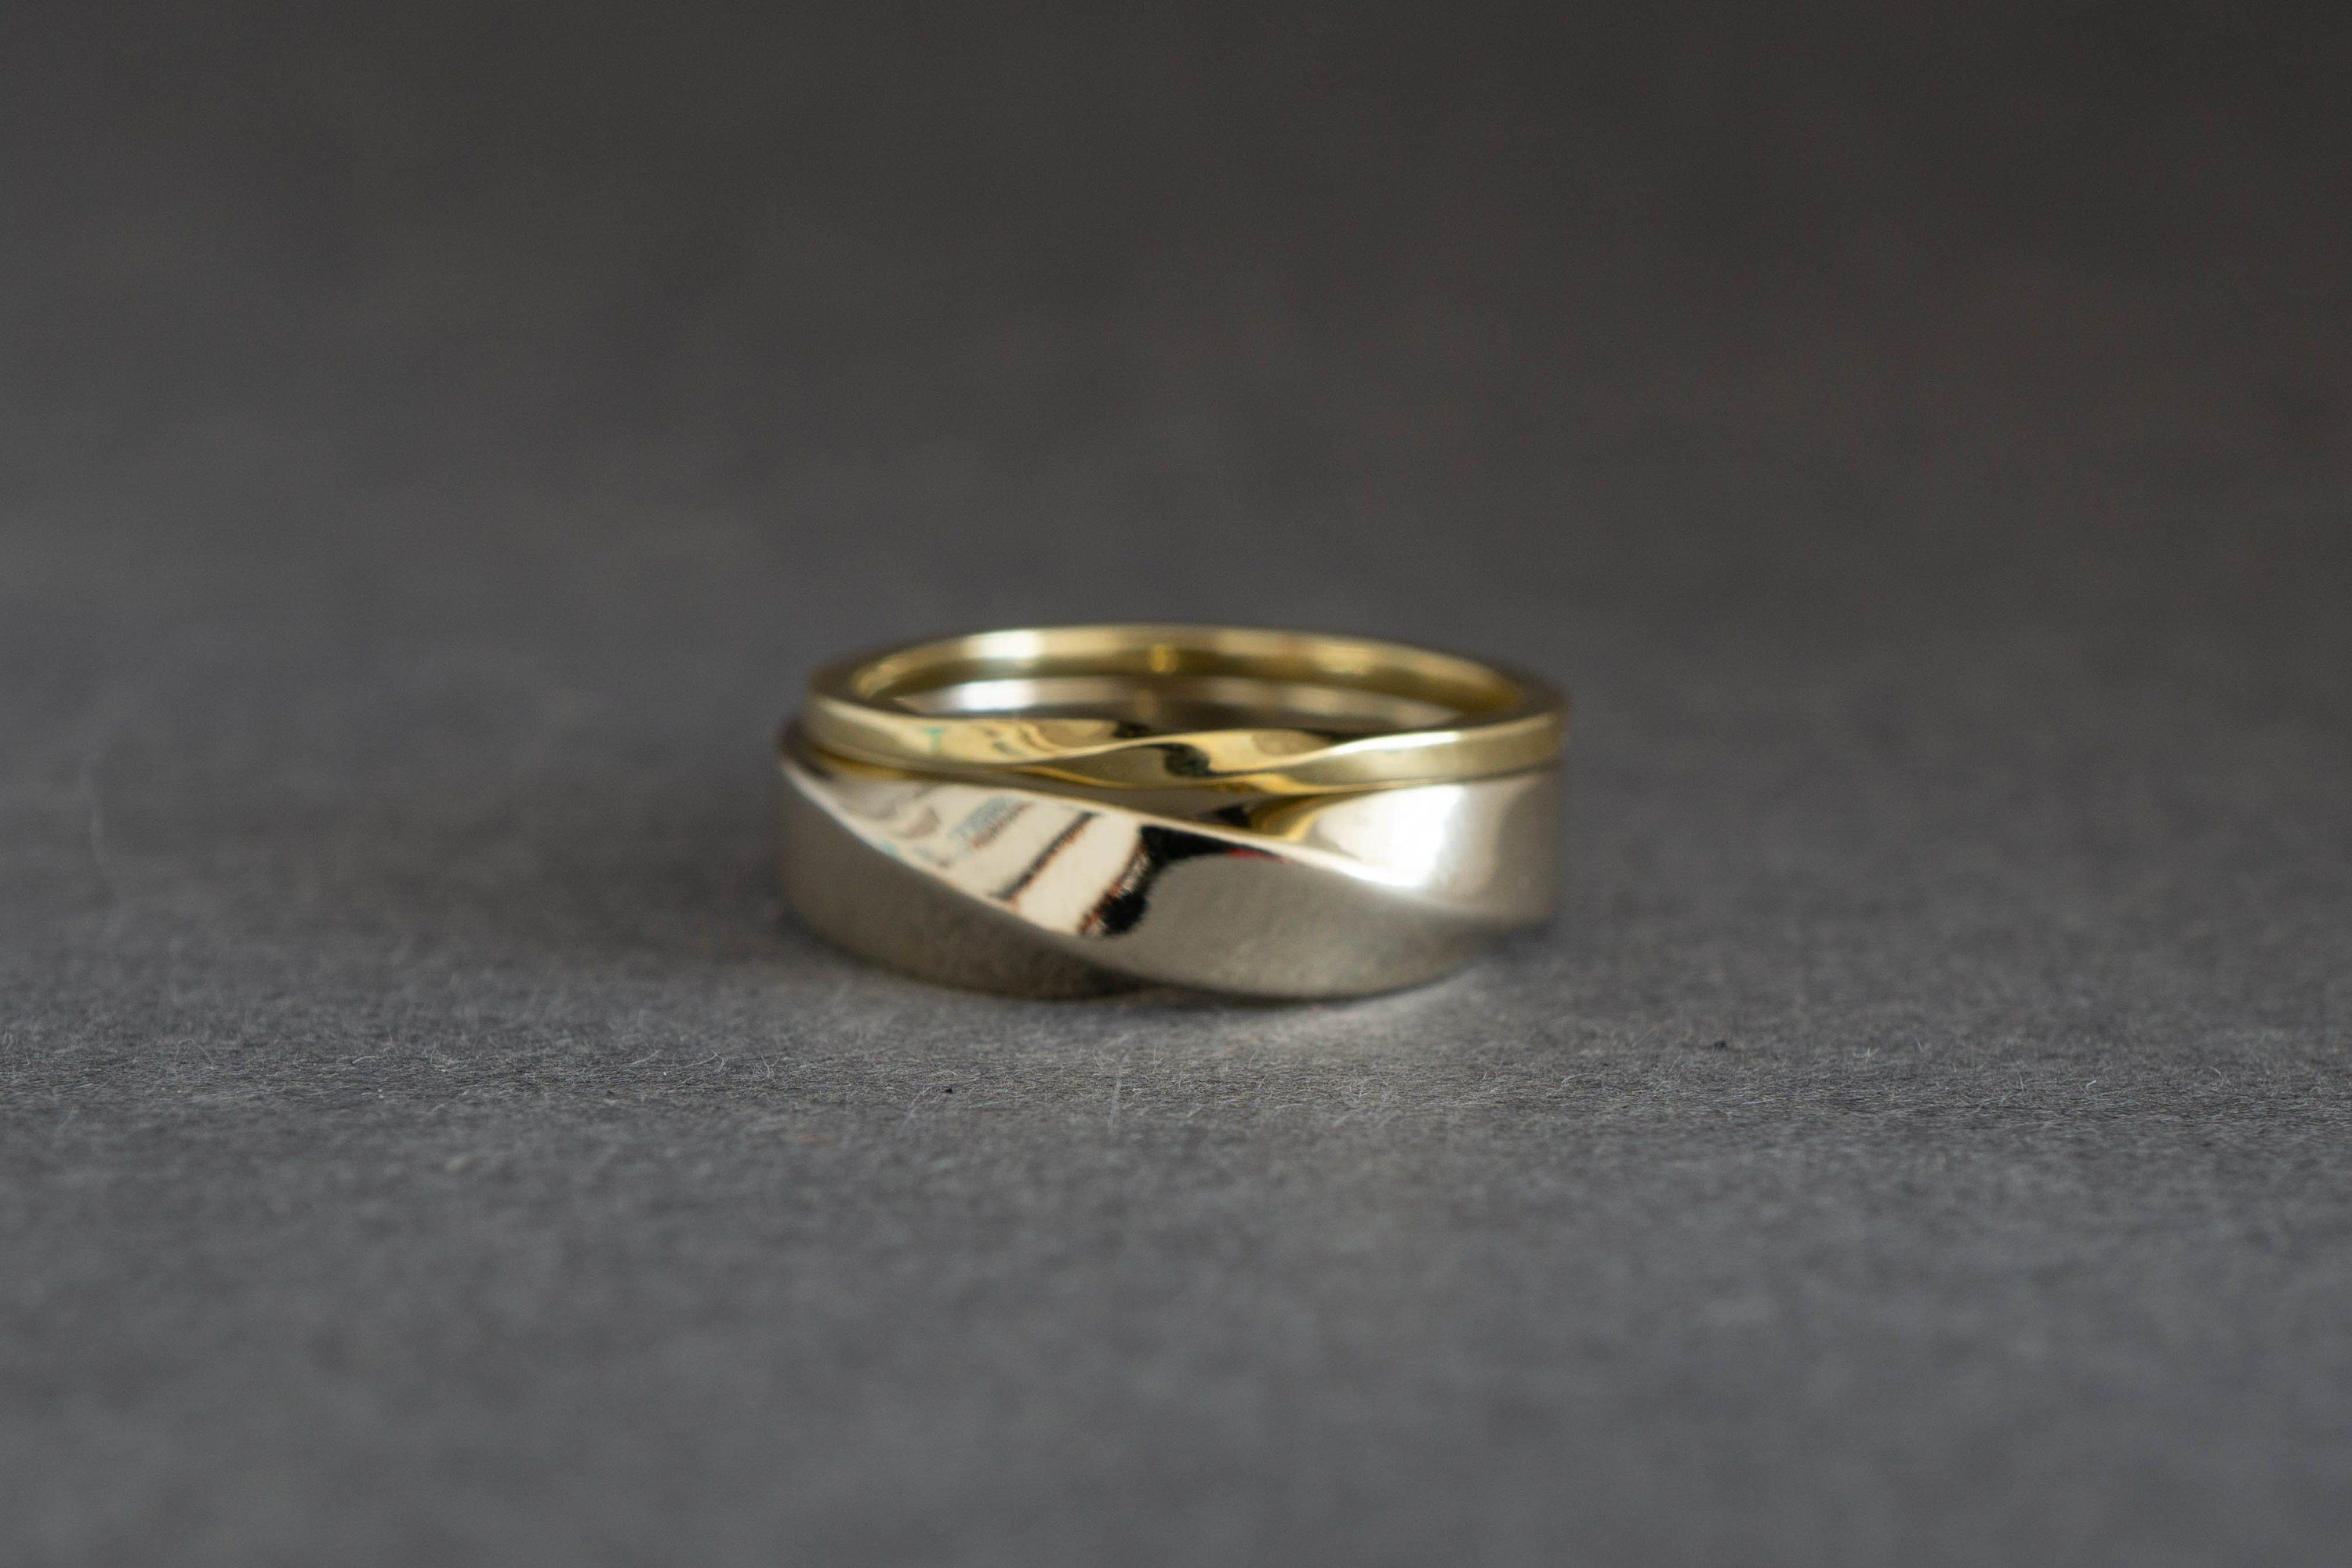 Twist Shout Matching Wedding Bands His And Hers 14k Gold Etsy Couples Ring Set Couple Rings Gold Gold Wedding Band Sets